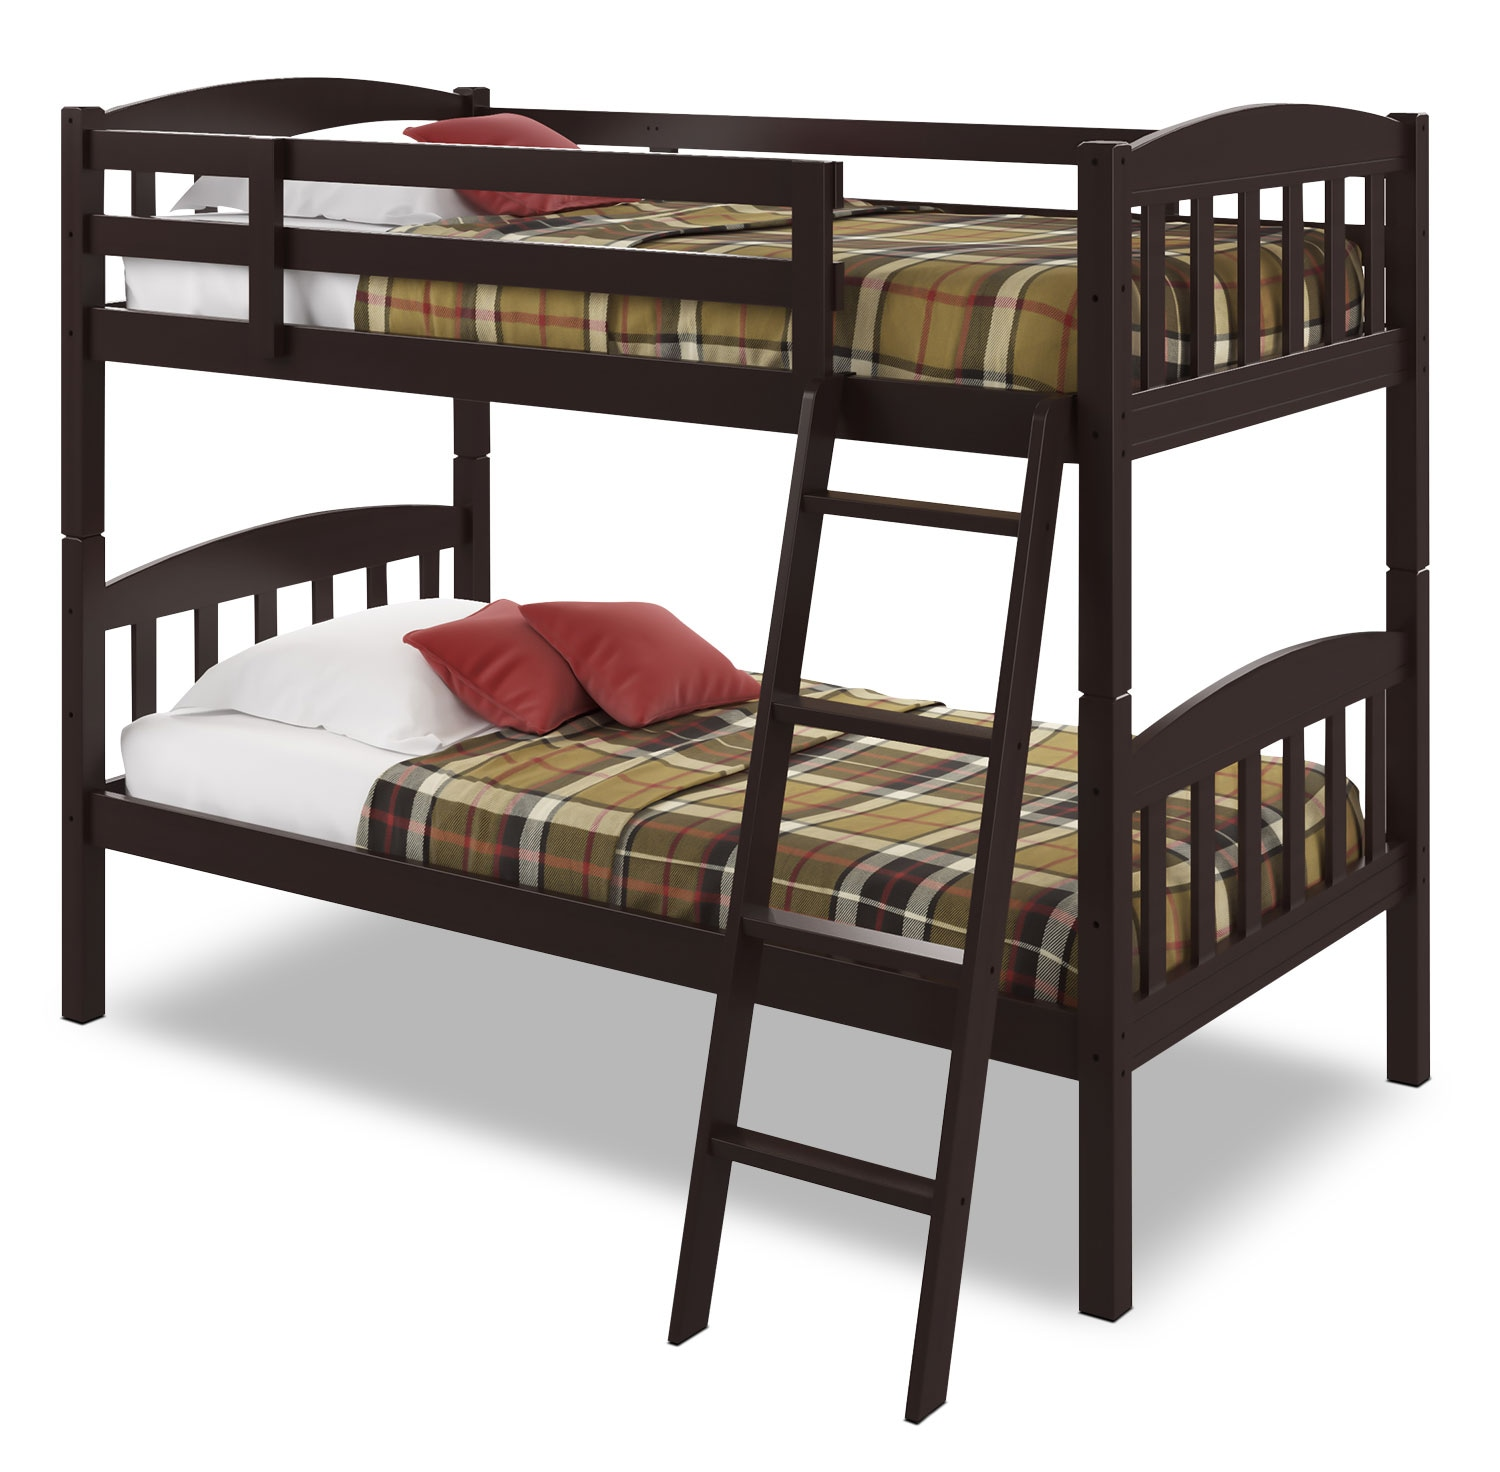 CorLiving Twin Bunk Bed with Slat Headboards – Dark Cappuccino